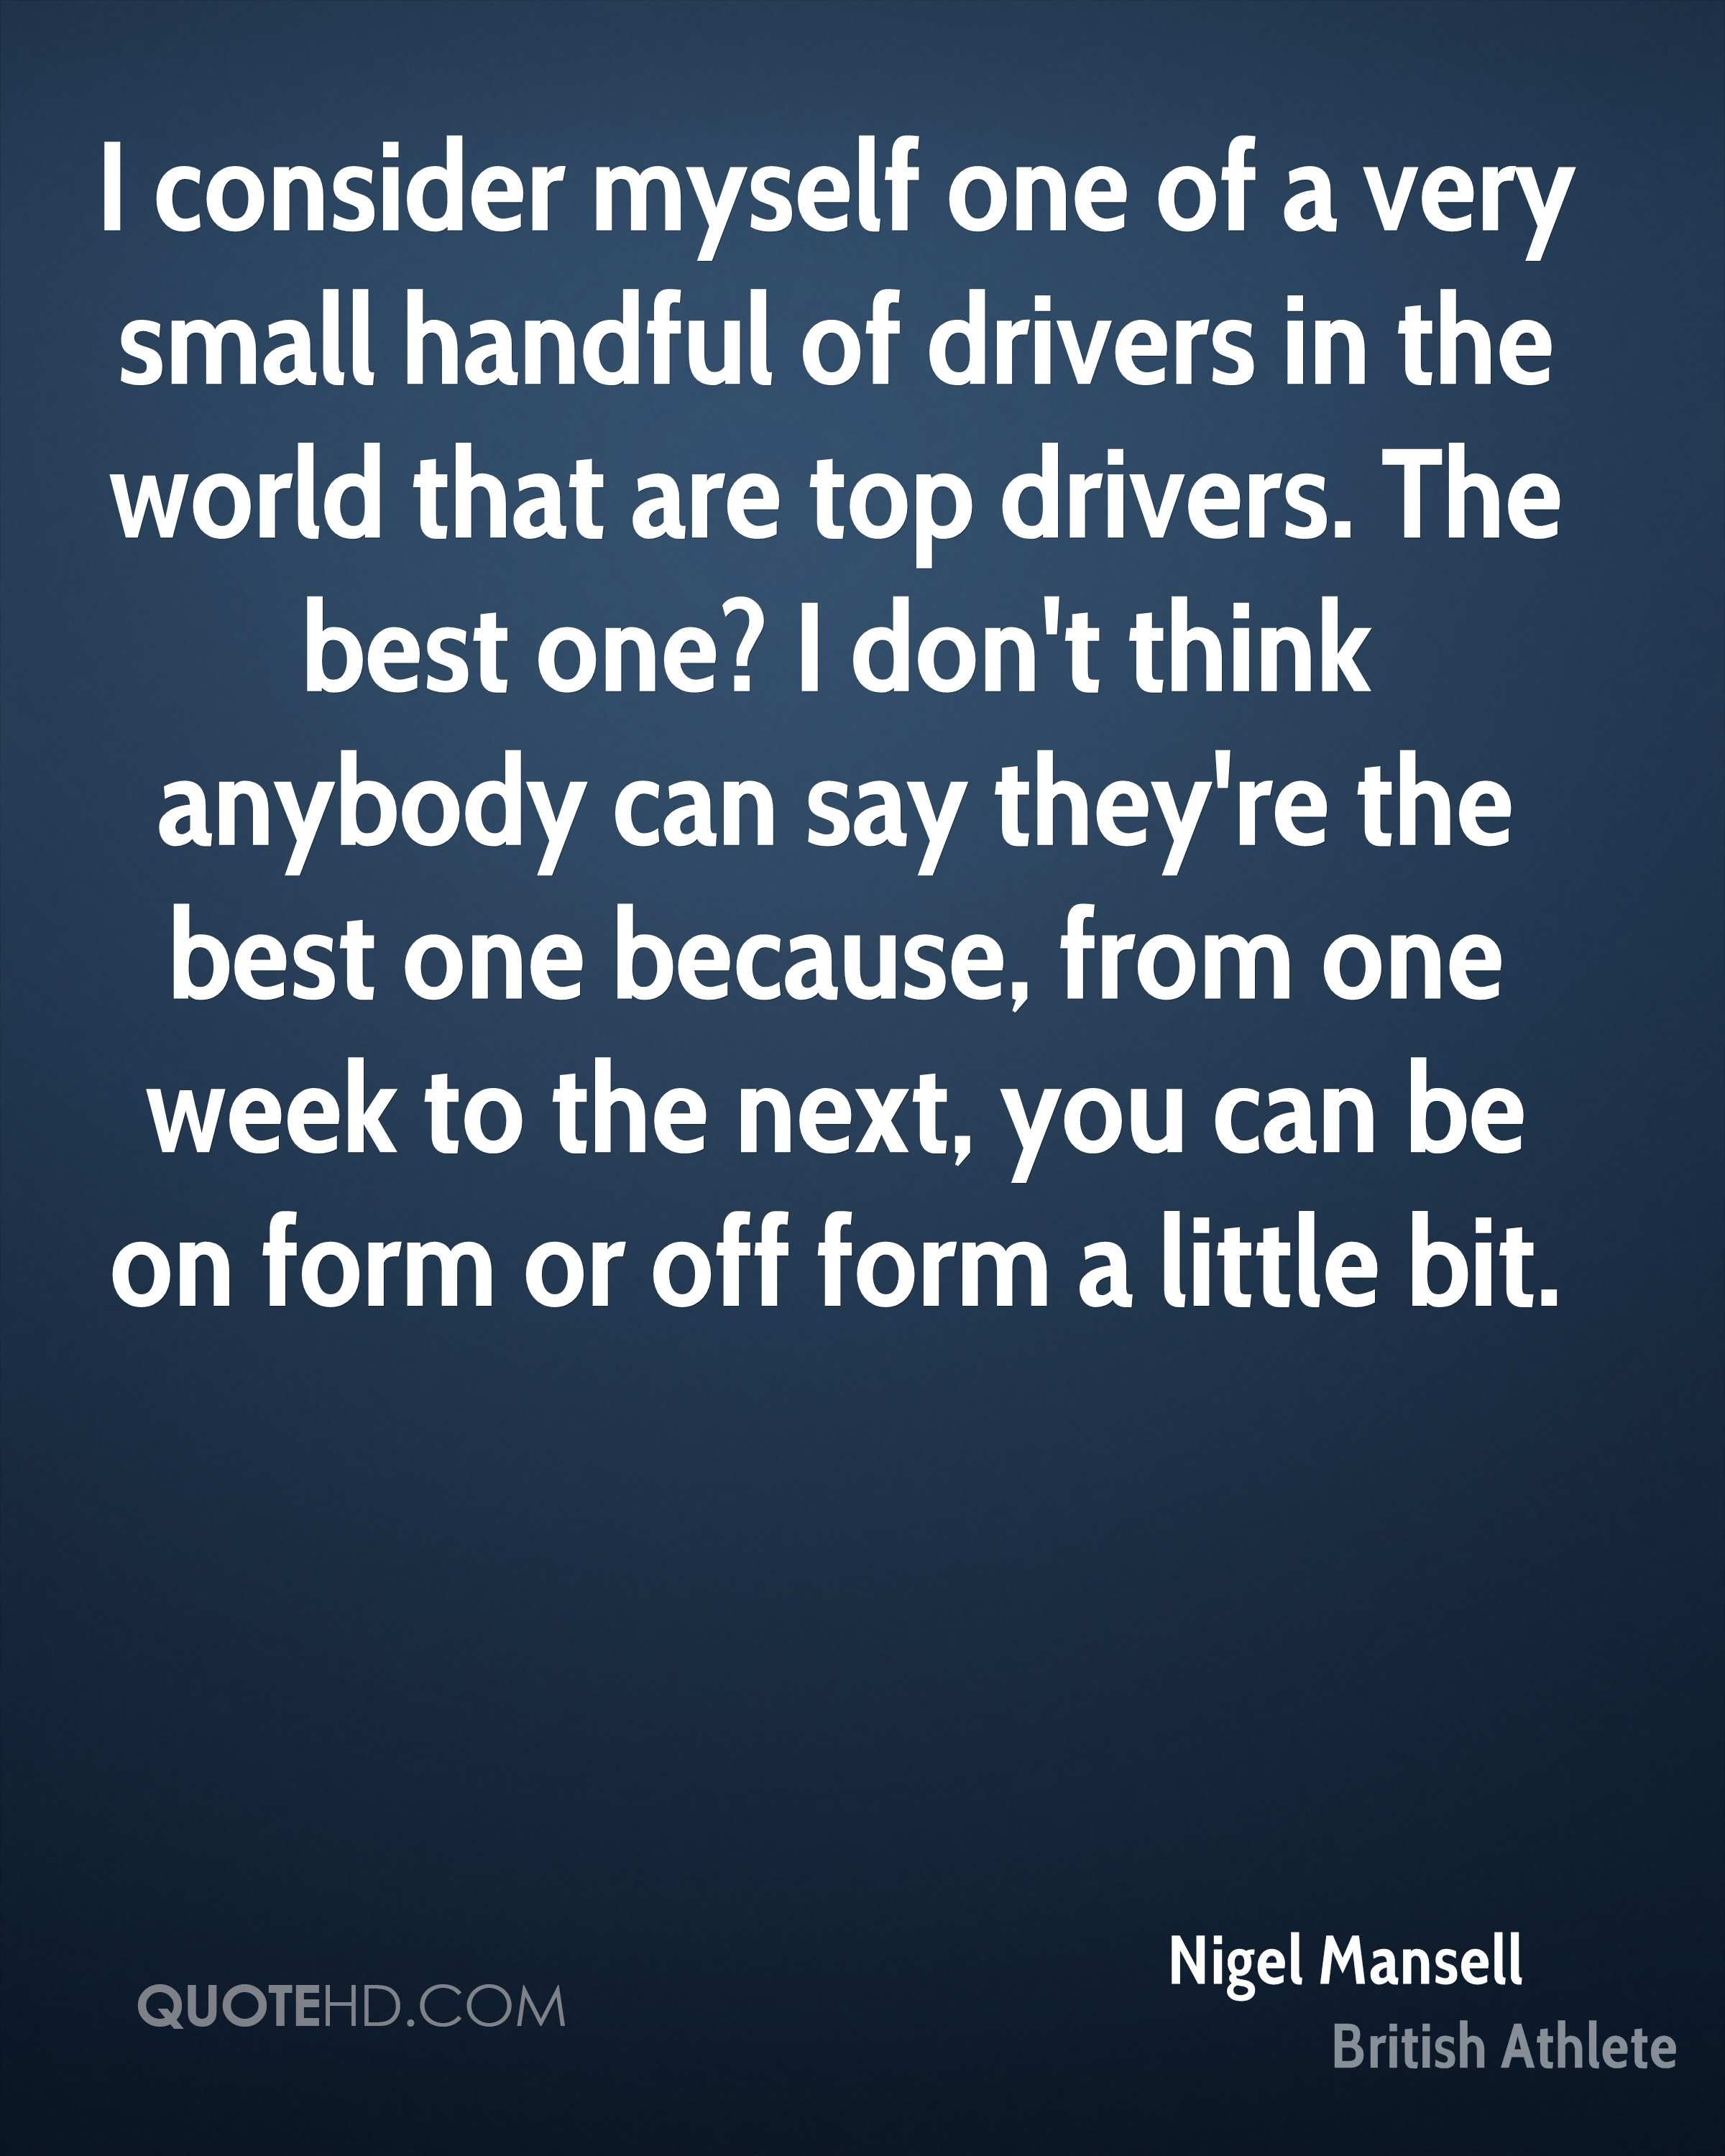 I consider myself one of a very small handful of drivers in the world that are top drivers. The best one? I don't think anybody can say they're the best one because, from one week to the next, you can be on form or off form a little bit.